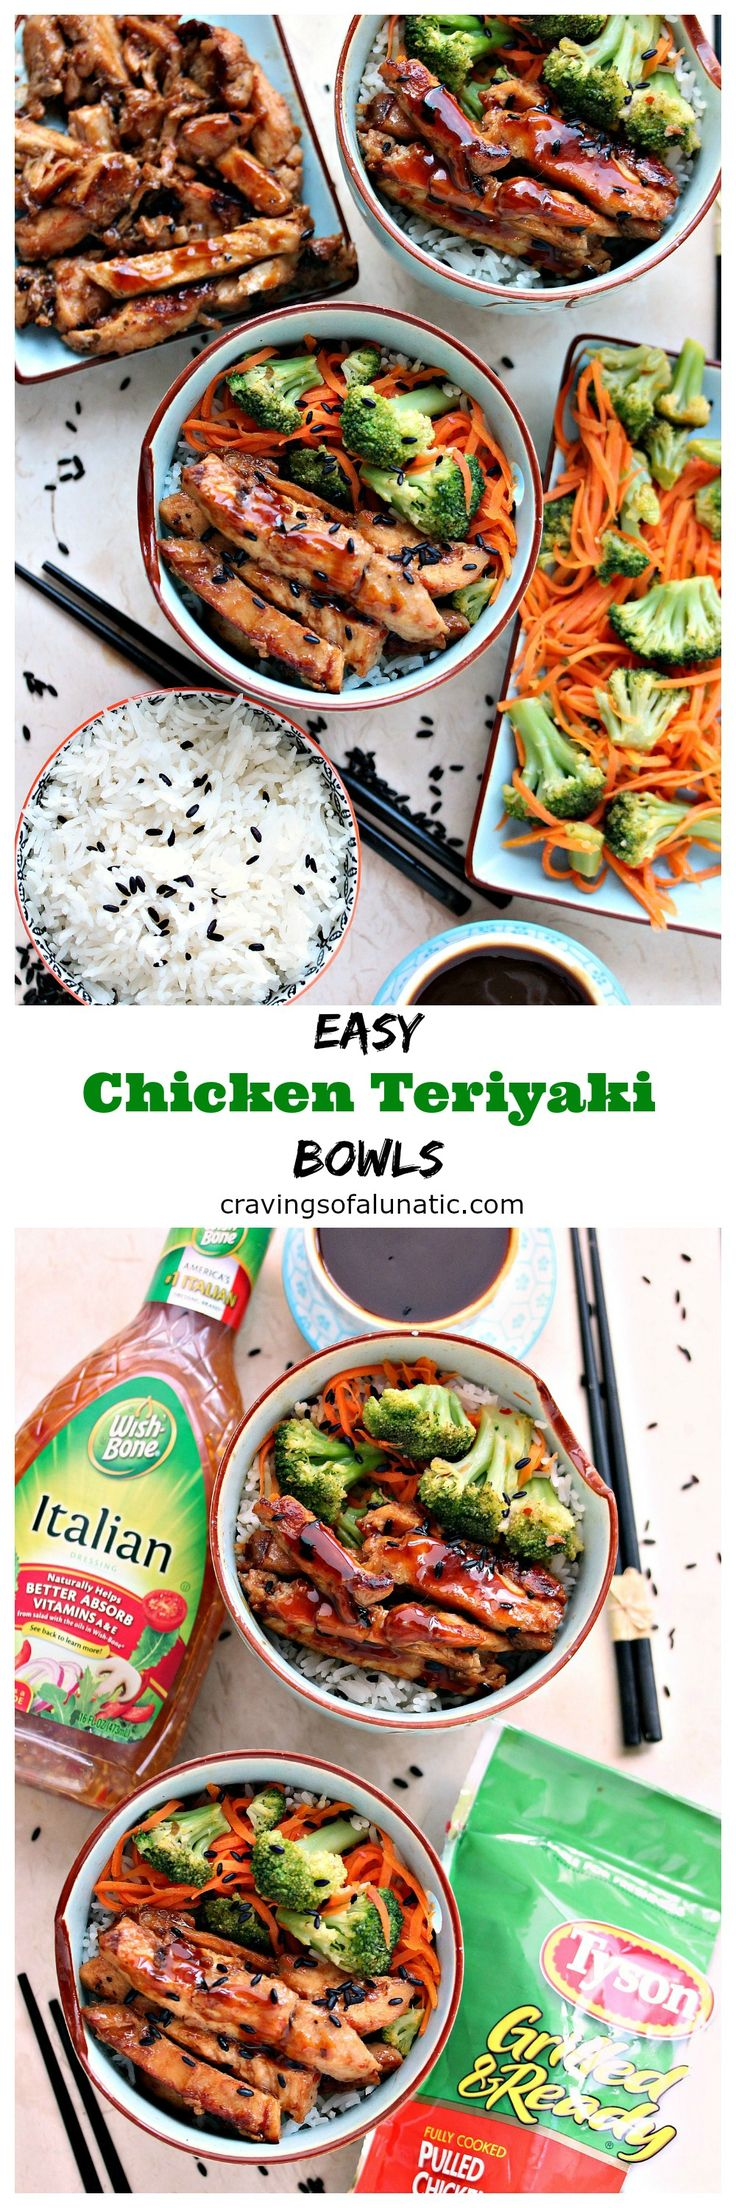 Easy Teriyaki Bowls from cravingsofalunatic.com- This recipe is incredibly quick and easy. It's the perfect way to get more vegetables in your diet without sacrificing taste and creativity. We serve ours over rice, but you can serve it over noodles, bean sprouts, or a fabulous salad. (@CravingsLunatic) #sponsored